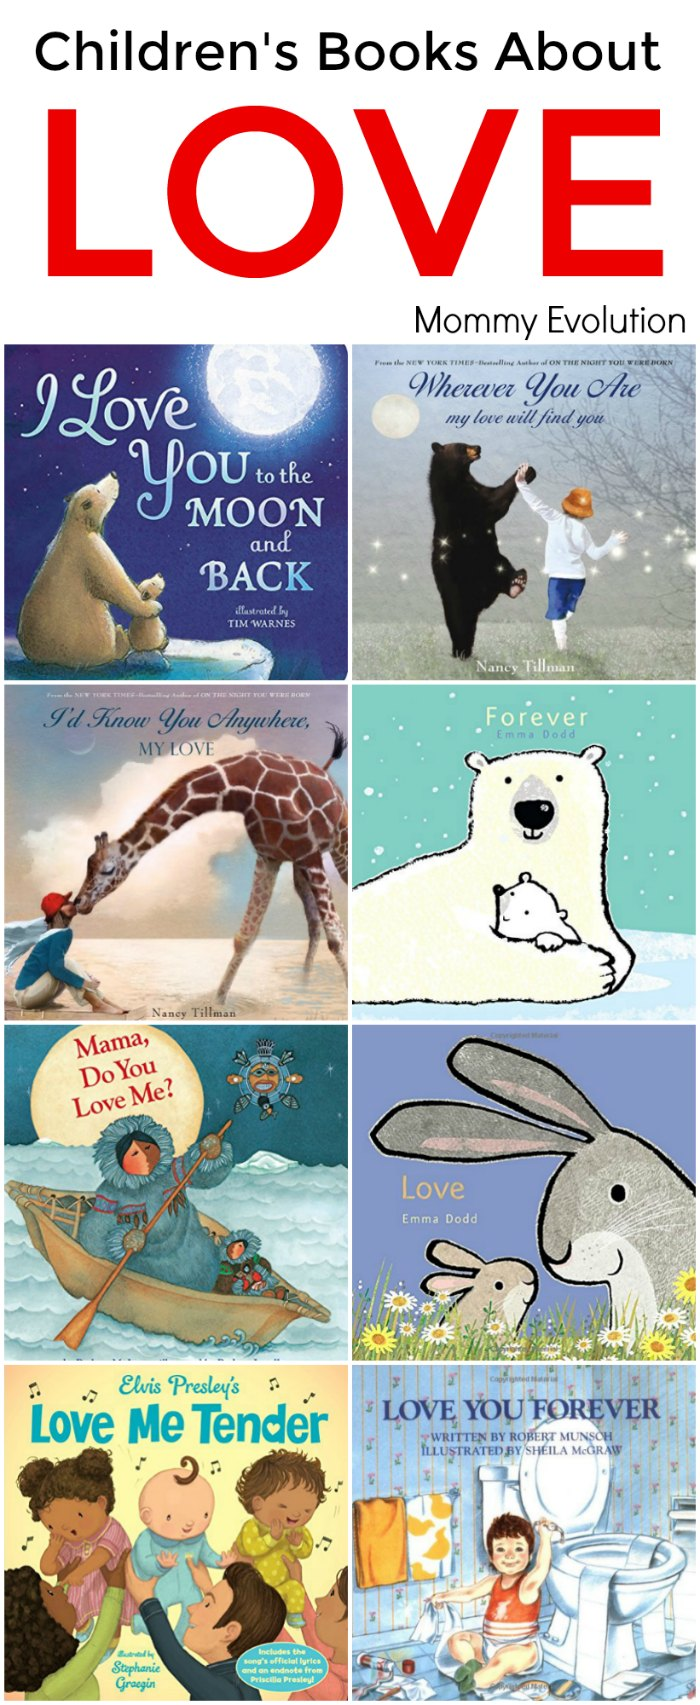 Childrens Books About Love - Perfect for any parent to share how much they love their child! | Mommy Evolution #kidlit #reading #childrensbooks #picturebooks #boardbooks